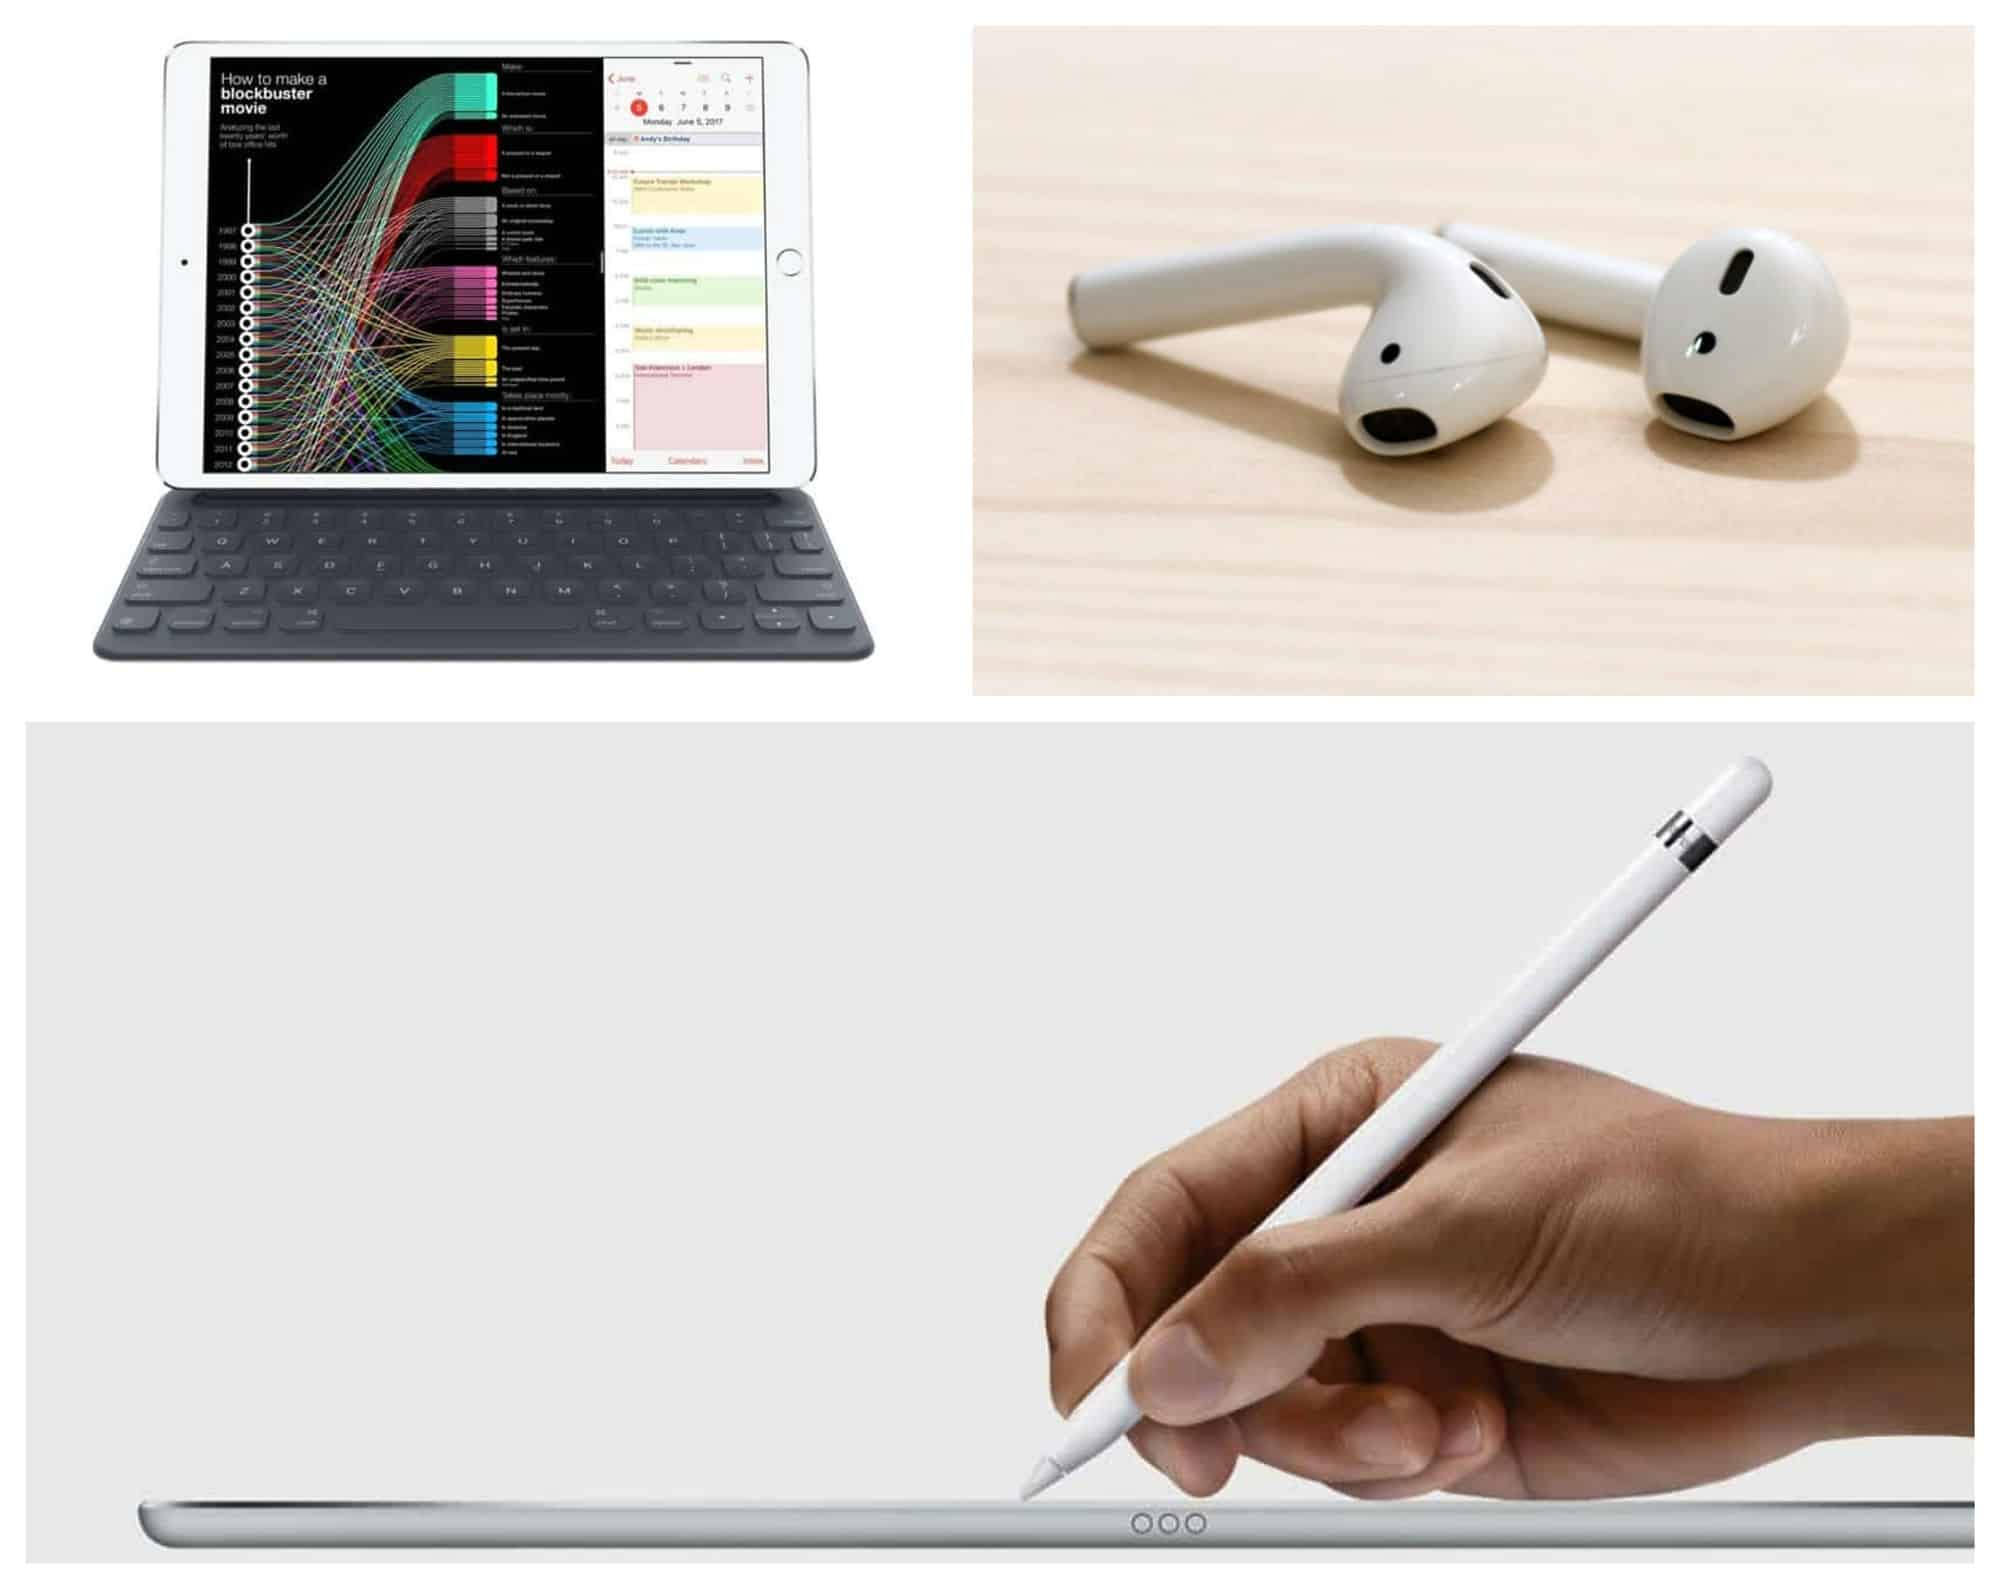 Sell your Apple accessories to us! The Cult of Mac buyback program will buy your used Apple Pencil, AirPods and Smart Keyboard.